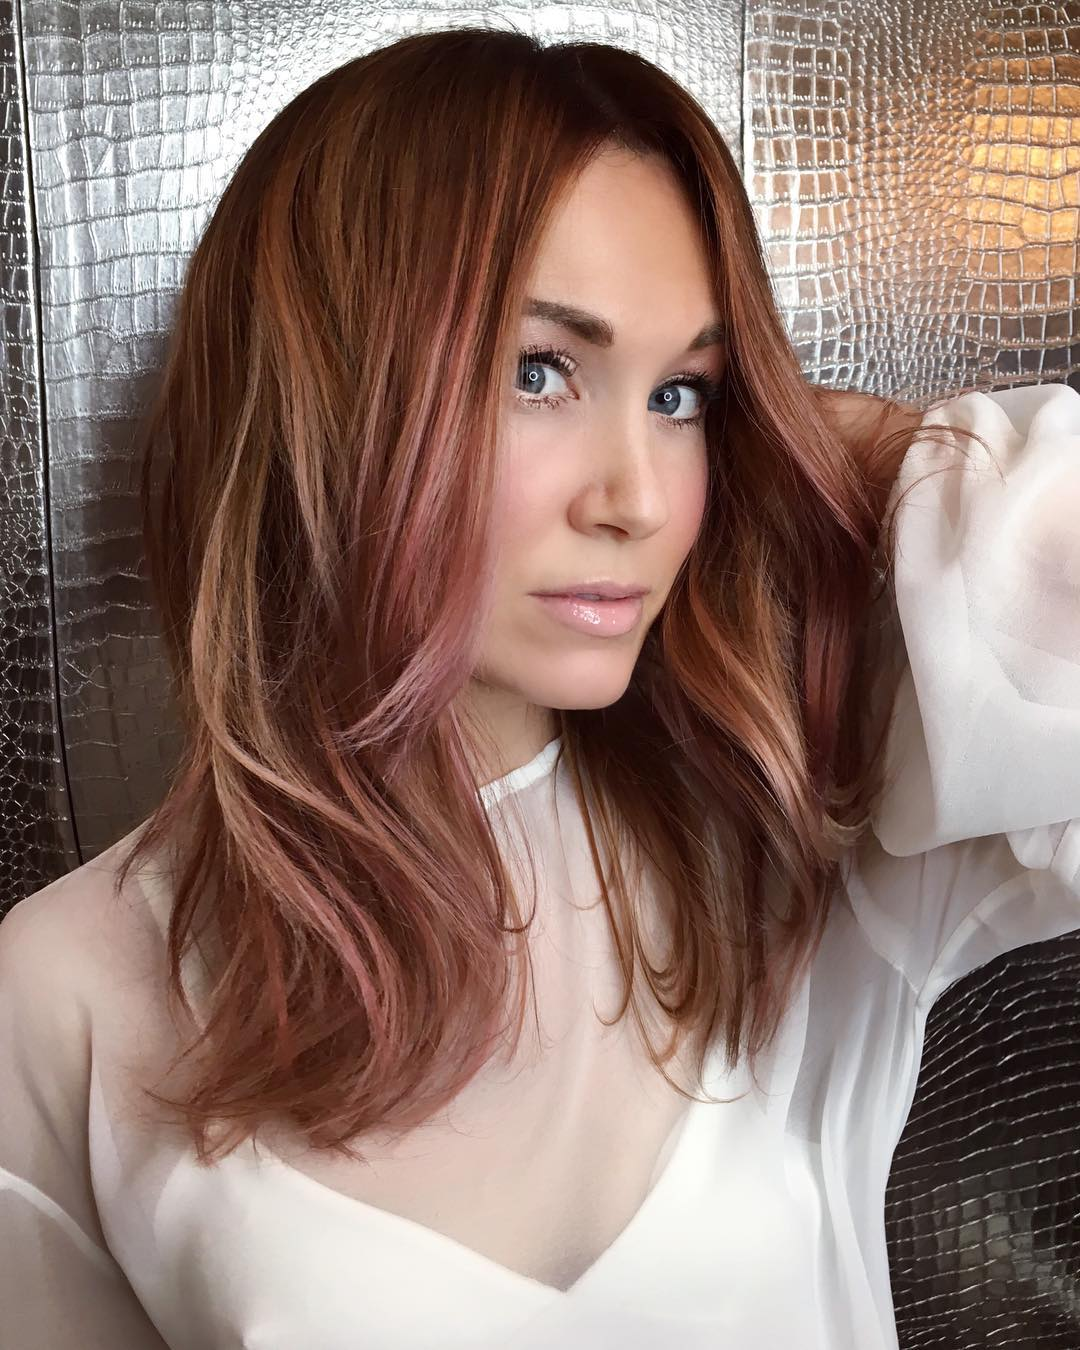 Mid Layered Cut with Face Framing Layers and Blowout Style on Light Brown Hair with Rose Highlights Medium Length Summer Hairstyle